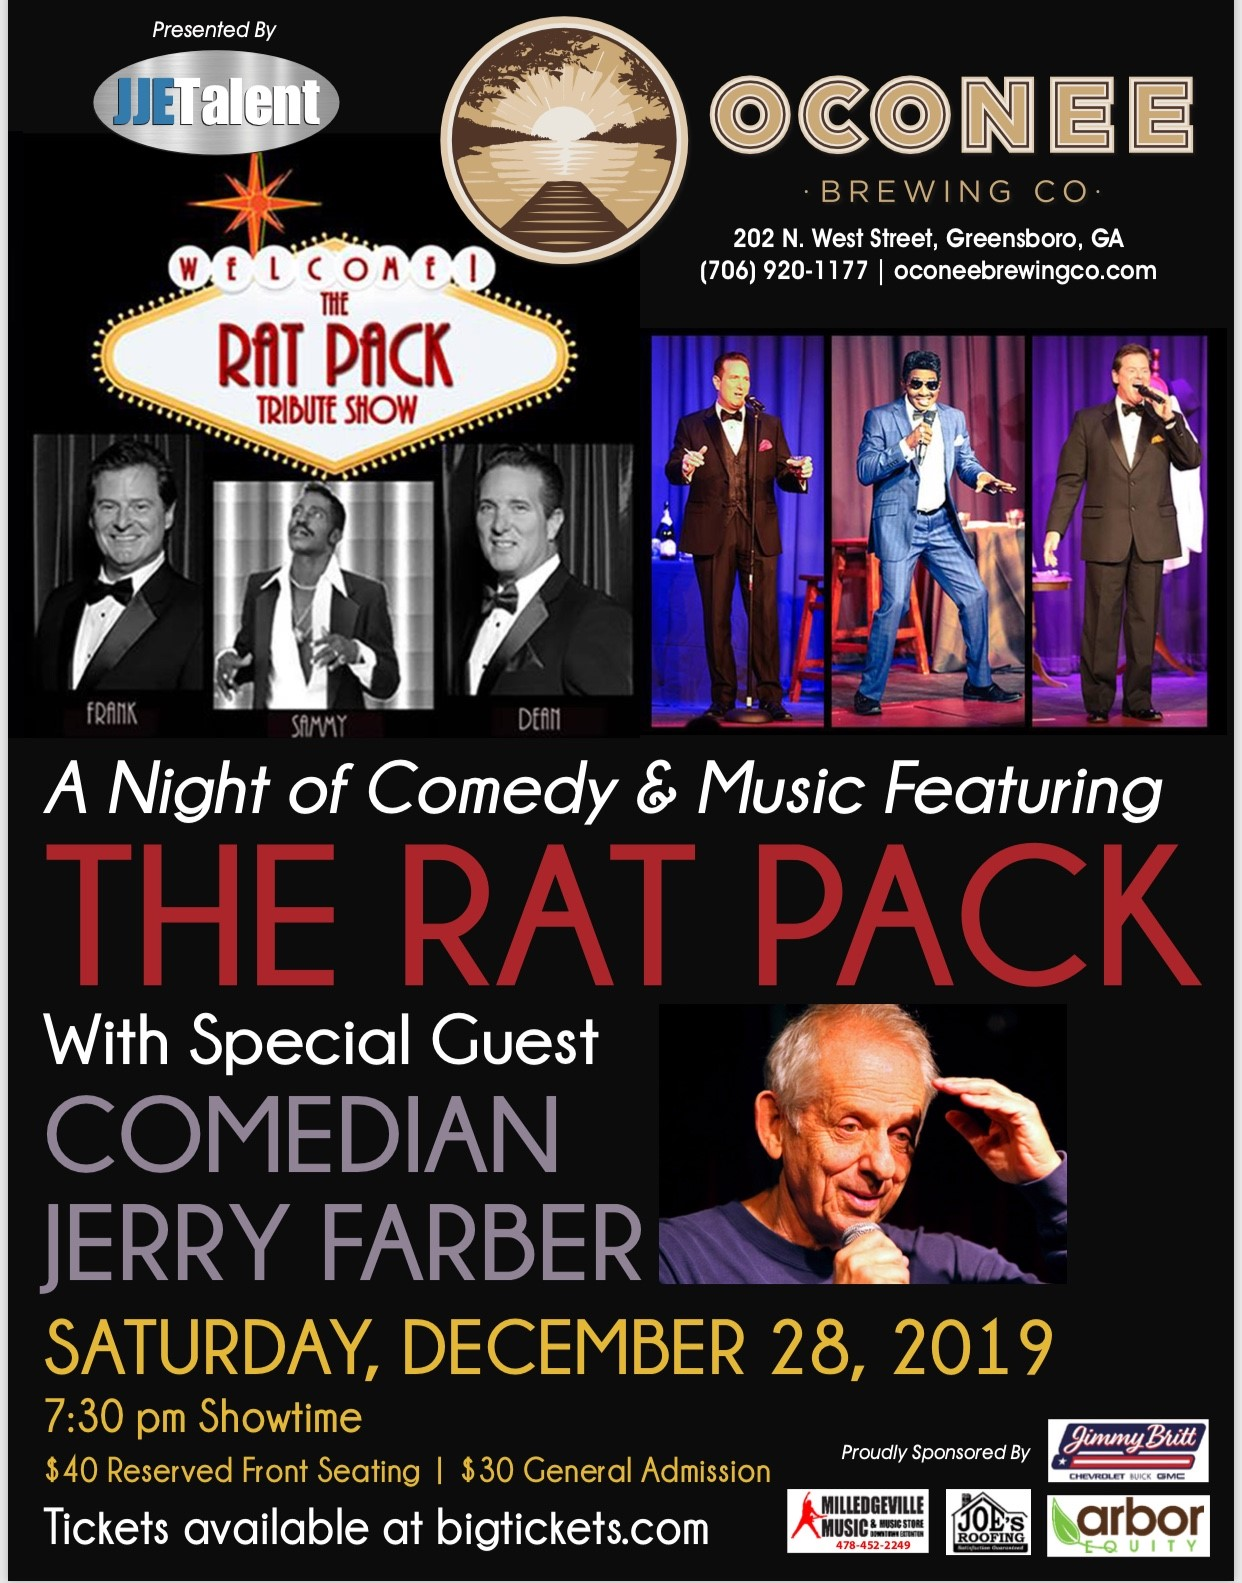 A Night of Comedy and Music Featuring The Rat Pack with special guest: Comedian Jerry Farber